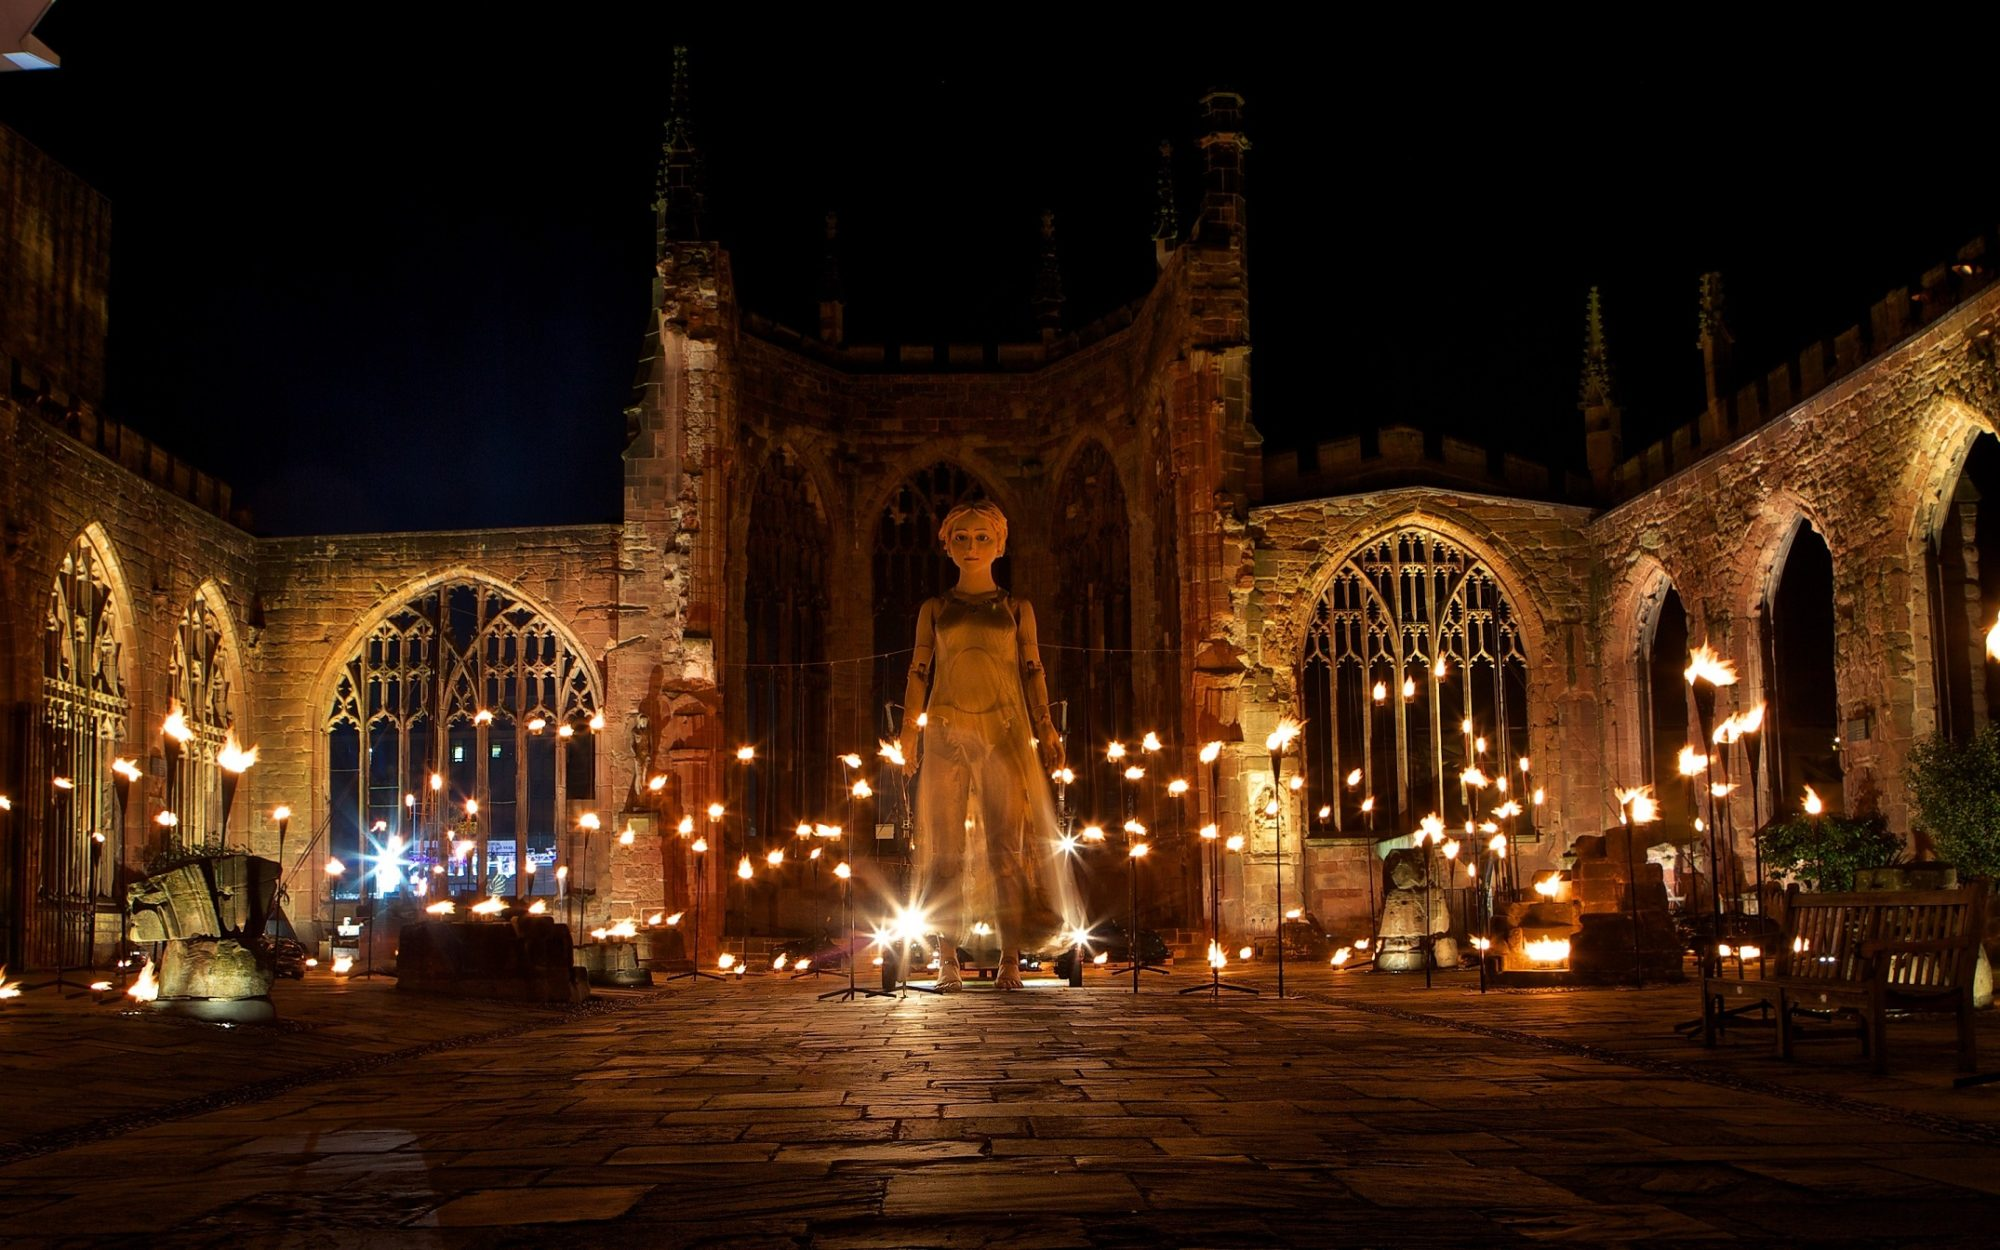 Godiva Awakes, a 20-ft Lady Godiva puppet awakes in Coventry's old cathedral